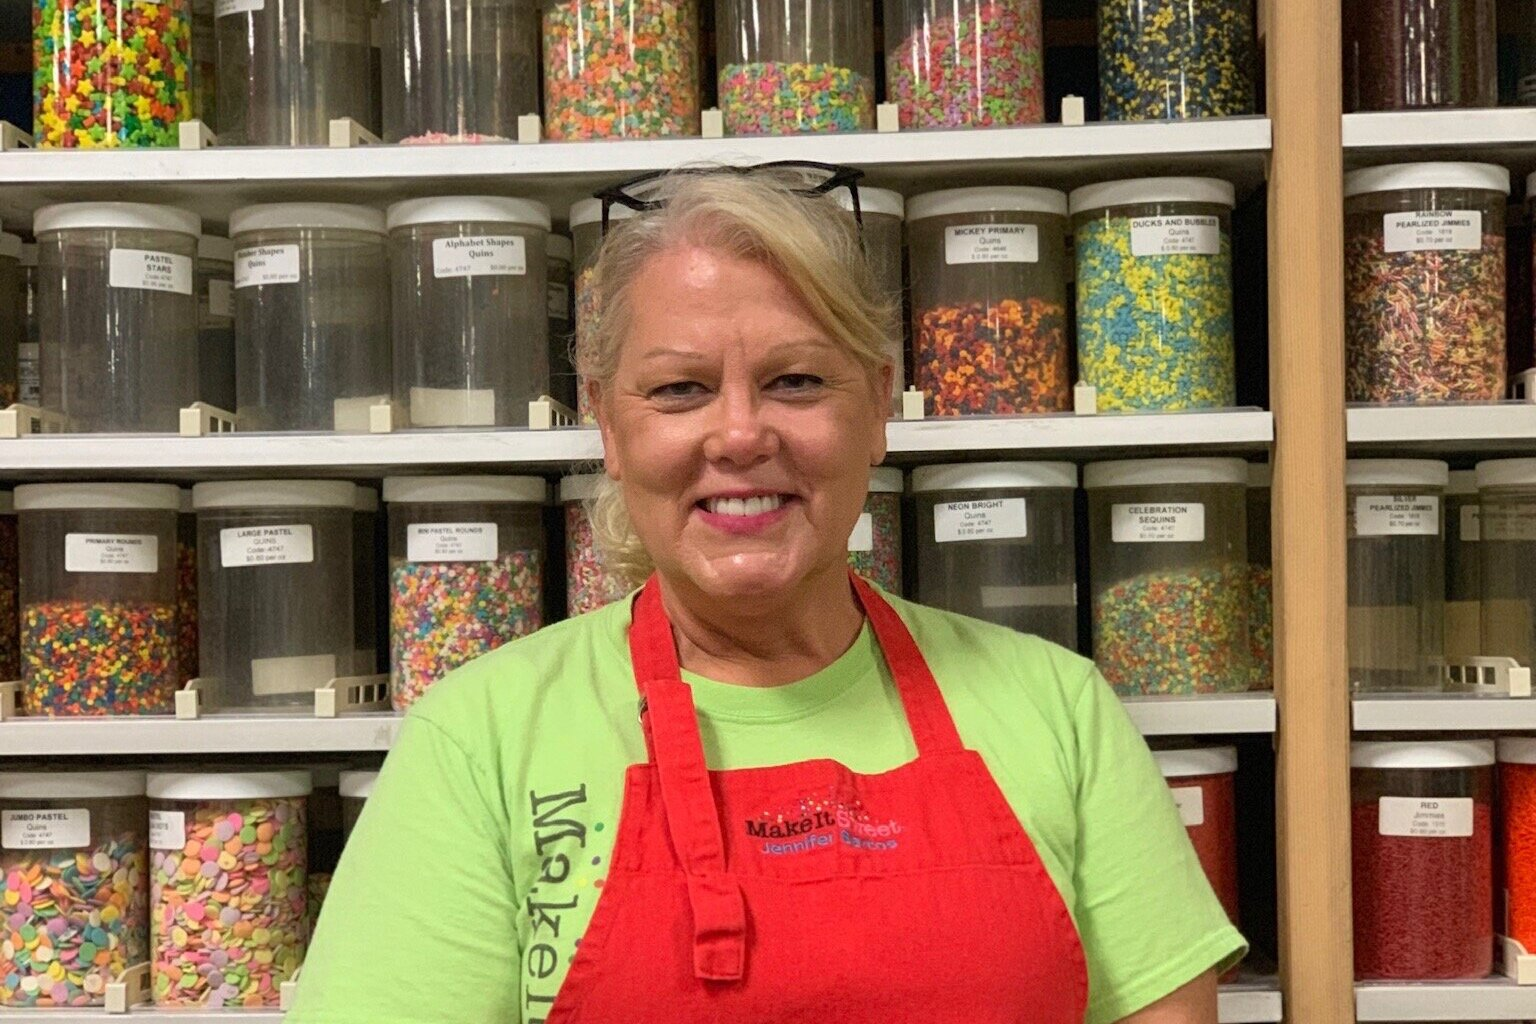 Jennifer Bartos    Jennifer is the owner and head instructor of Make It Sweet, an Austin based specialty retail supply store and hands-on classroom studio with a focus on the tools, supplies, ingredients and educational and recreational classes to make beautiful and delicious cakes, cookies and candies.